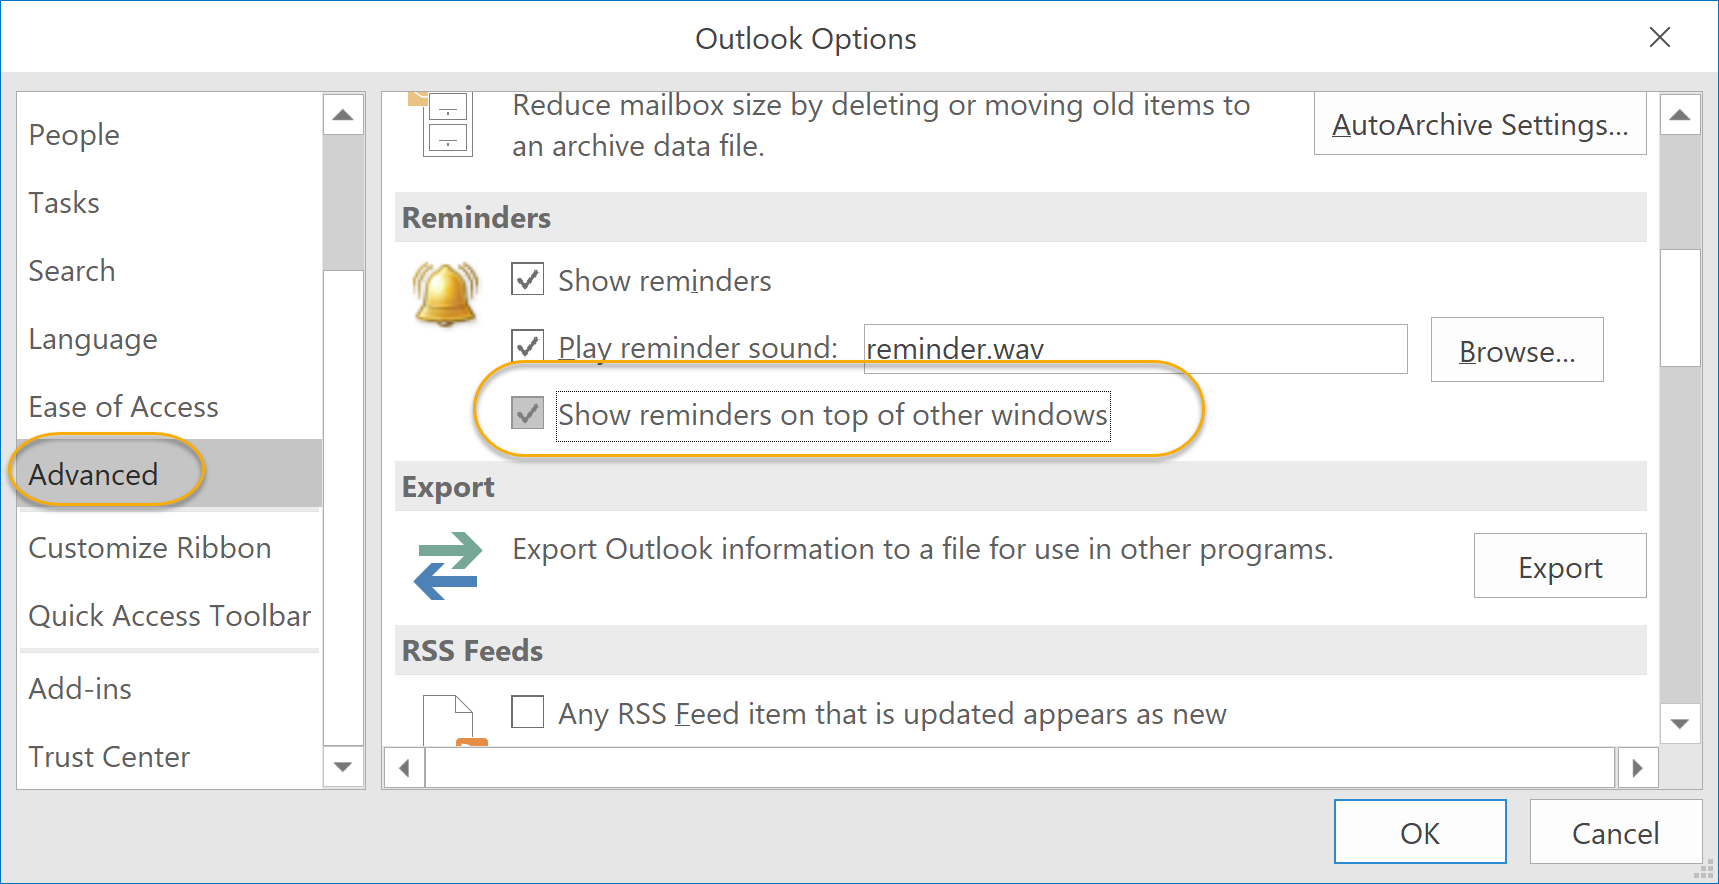 Show reminders on top of other windows Check Box